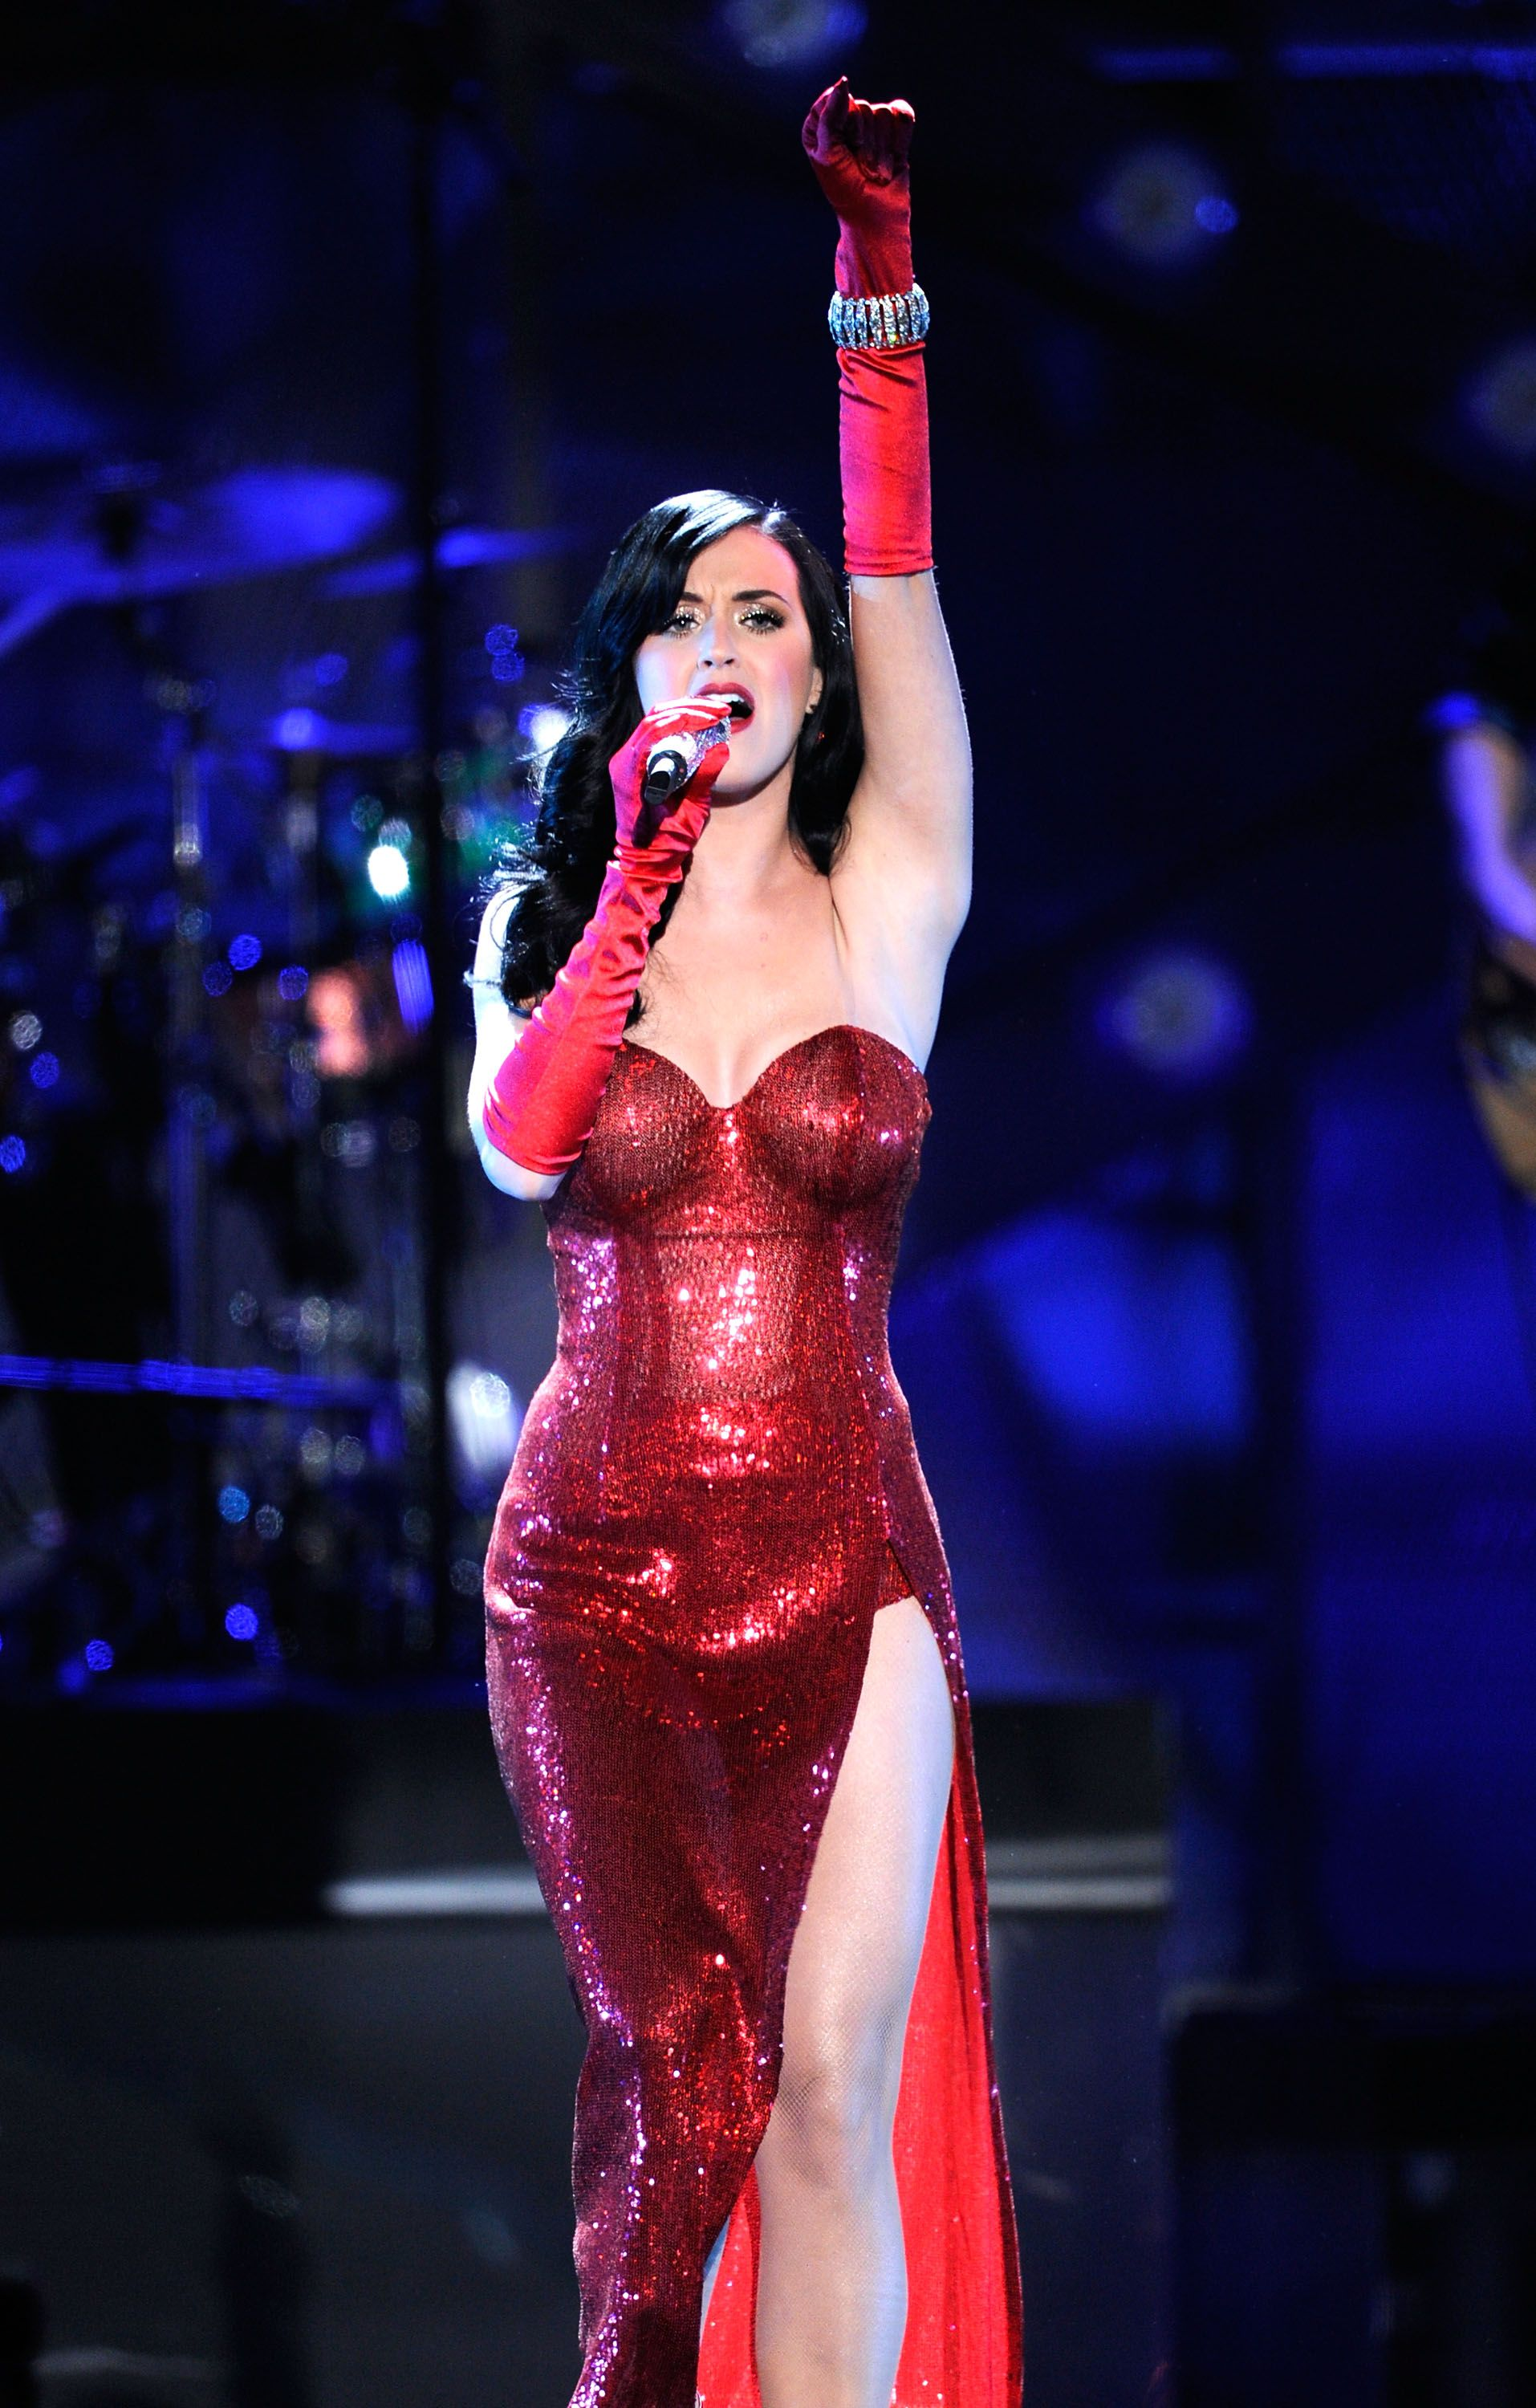 Katy Perry wearing glitter red dress